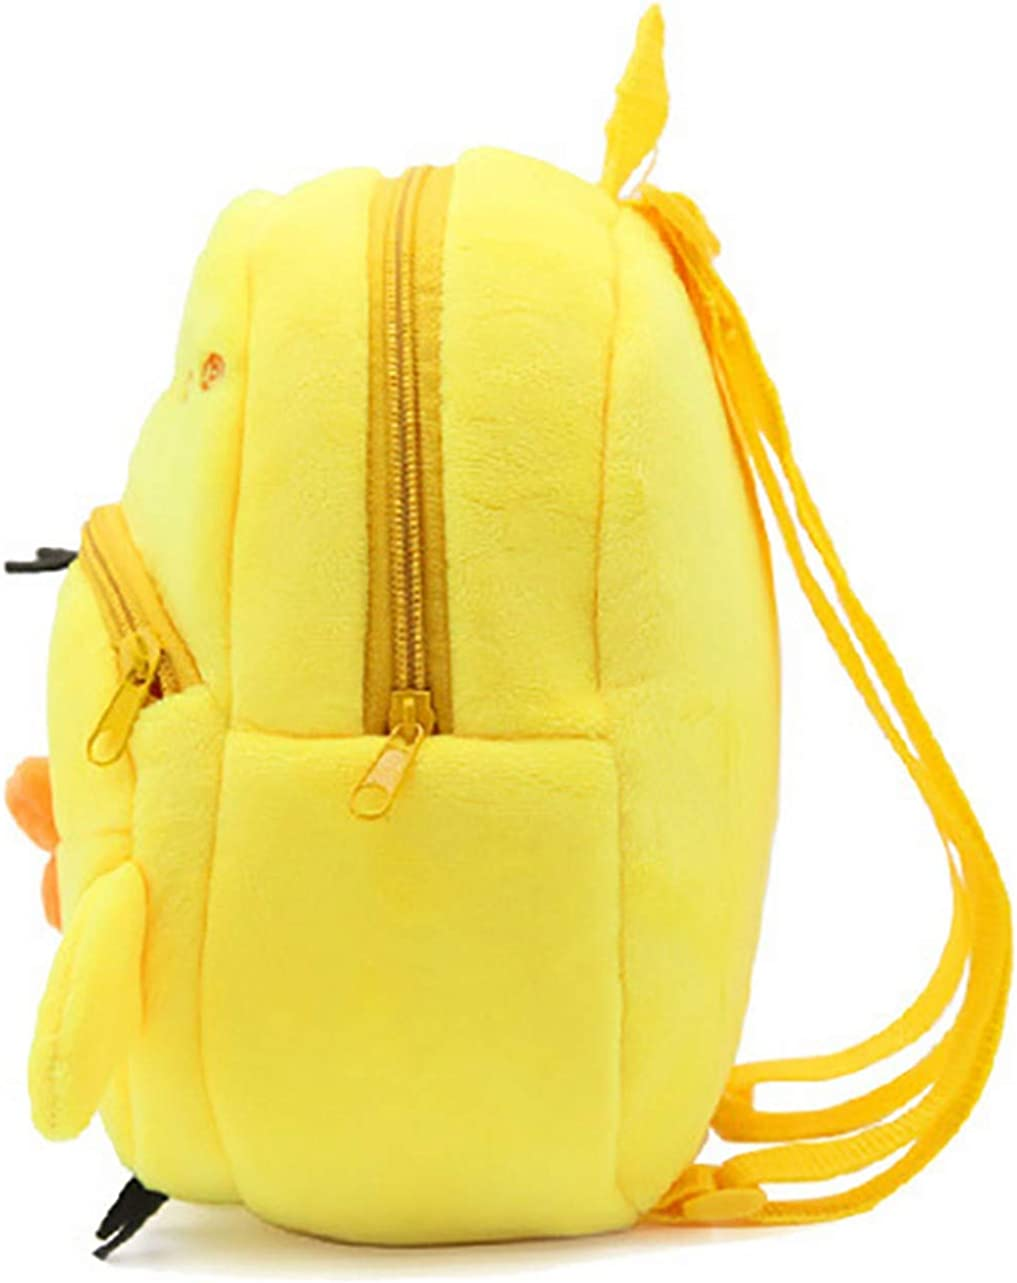 Backpack for Kids Yellow duck Toddler Child Cute Animal for Pre School Pre Kindergarten 1-3 Years